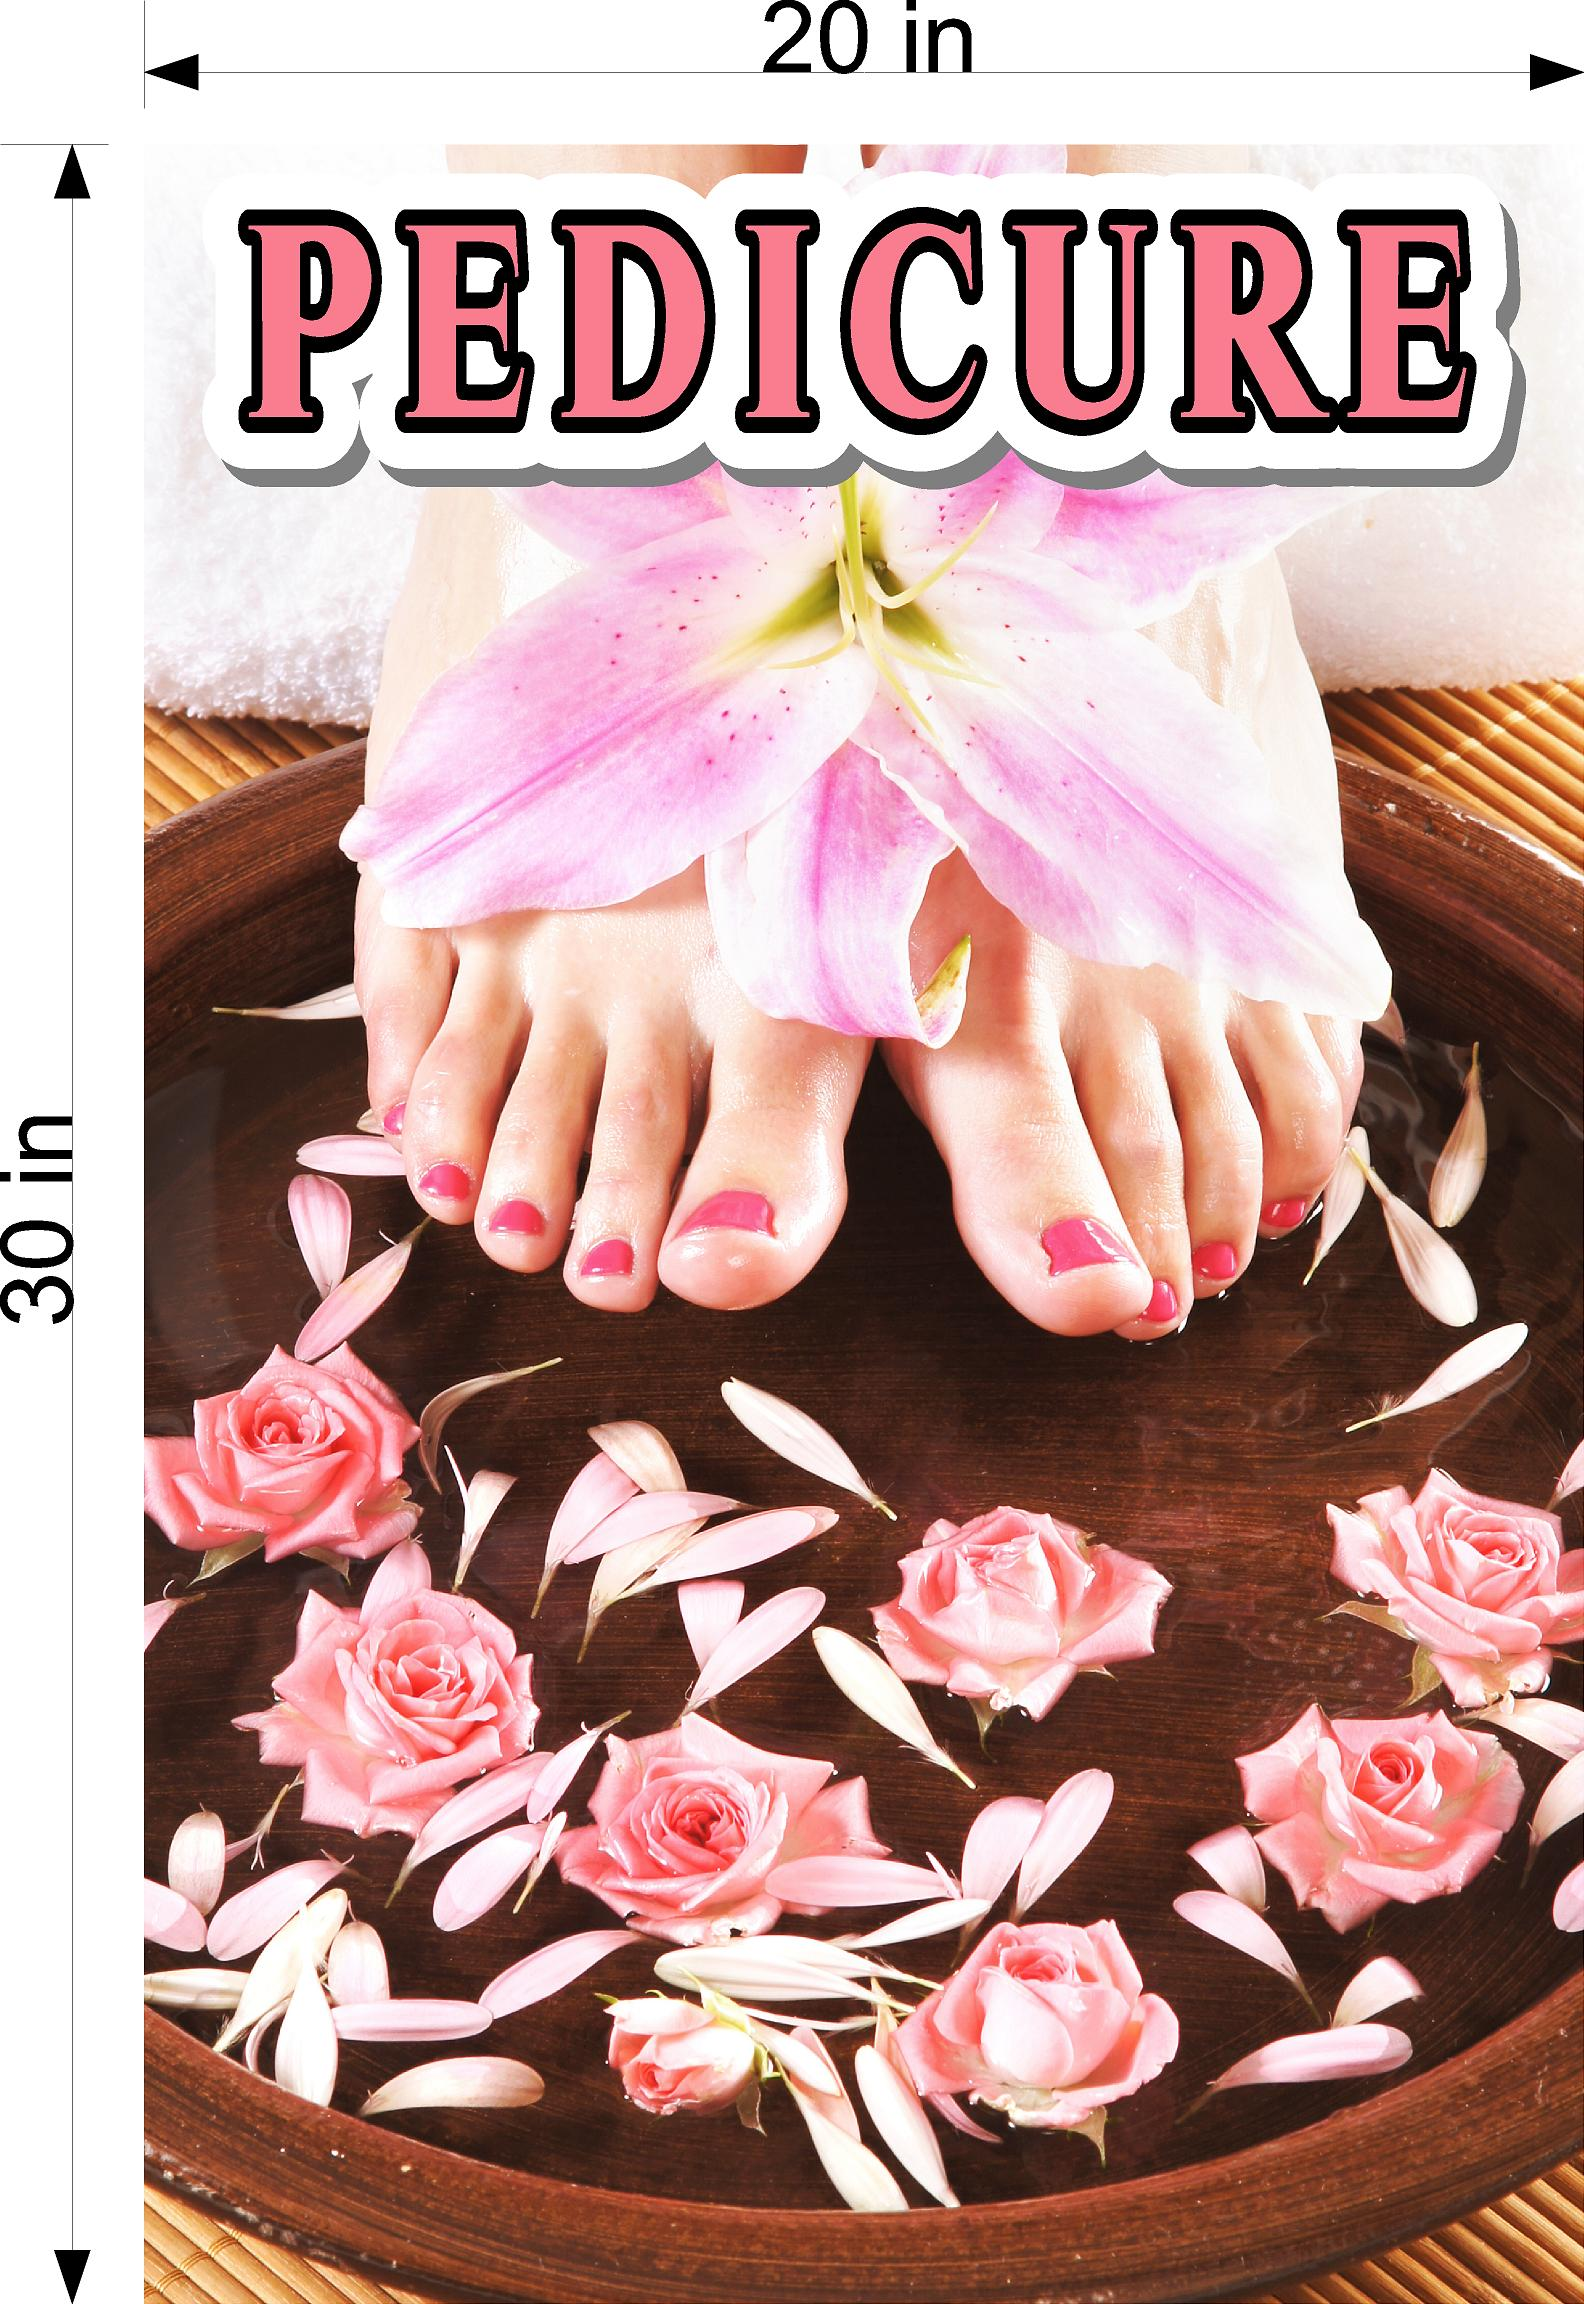 Pedicure 11 Photo-Realistic Paper Poster Premium Matte Interior Inside Sign Advertising Vertical  Marketing Wall Window Non-Laminated